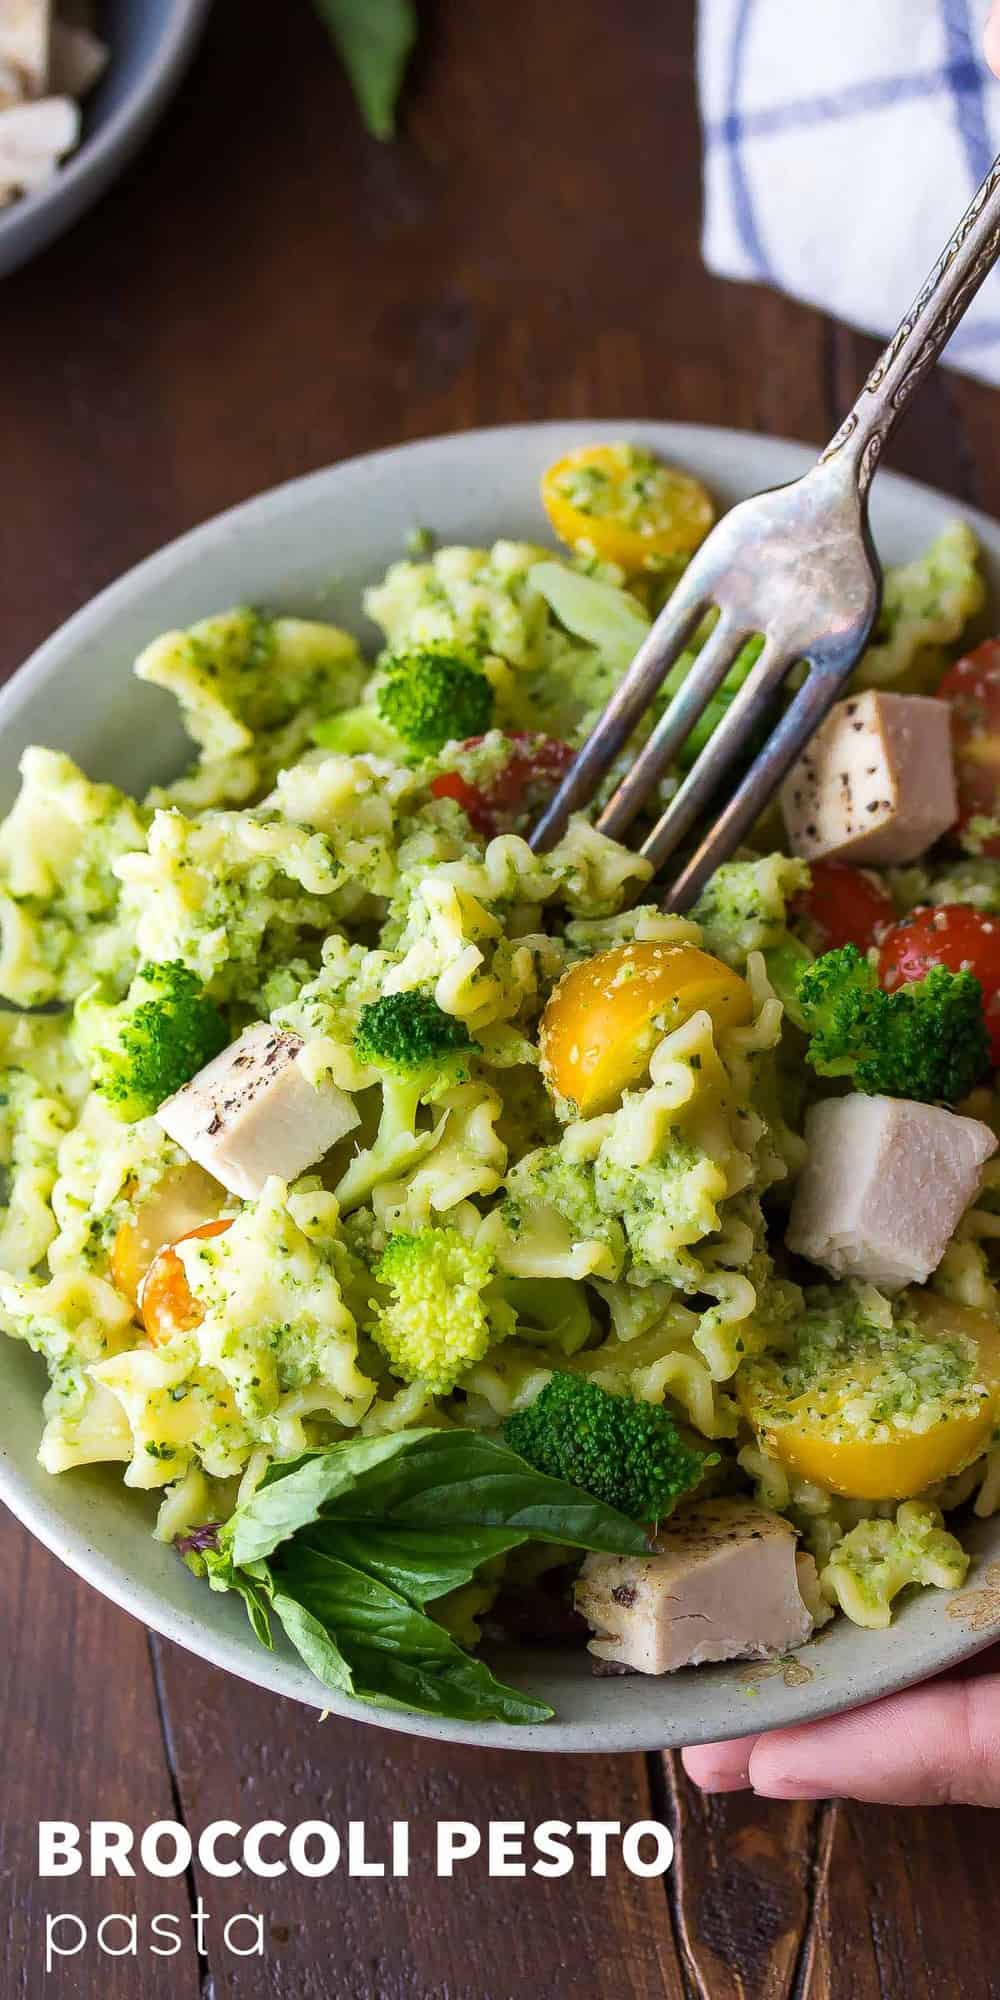 Almond Broccoli Pesto Pasta Recipe with Chicken, an easy, healthy 30 minute dinner recipe!